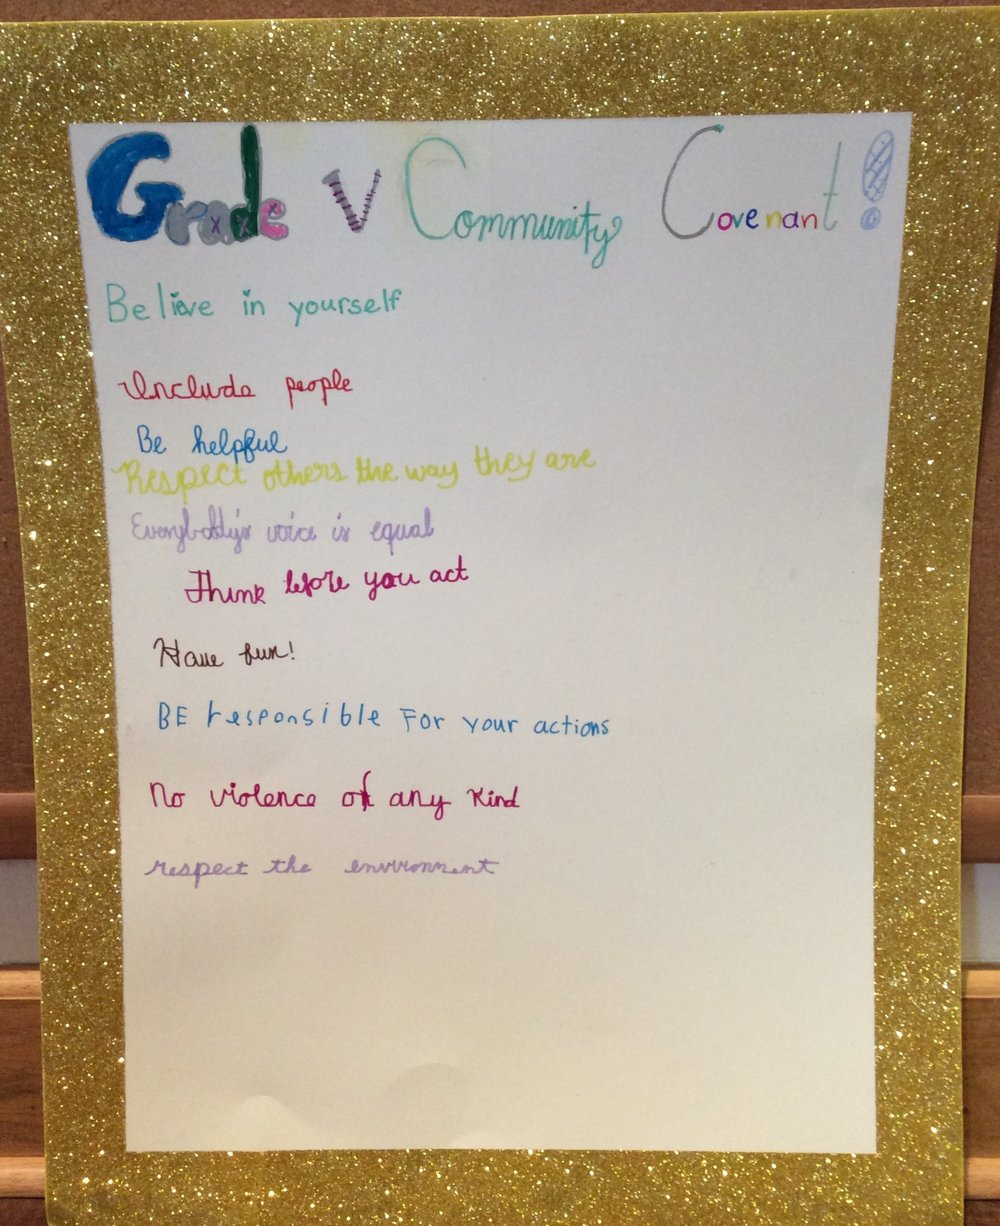 The Grade 5 Community Covenant